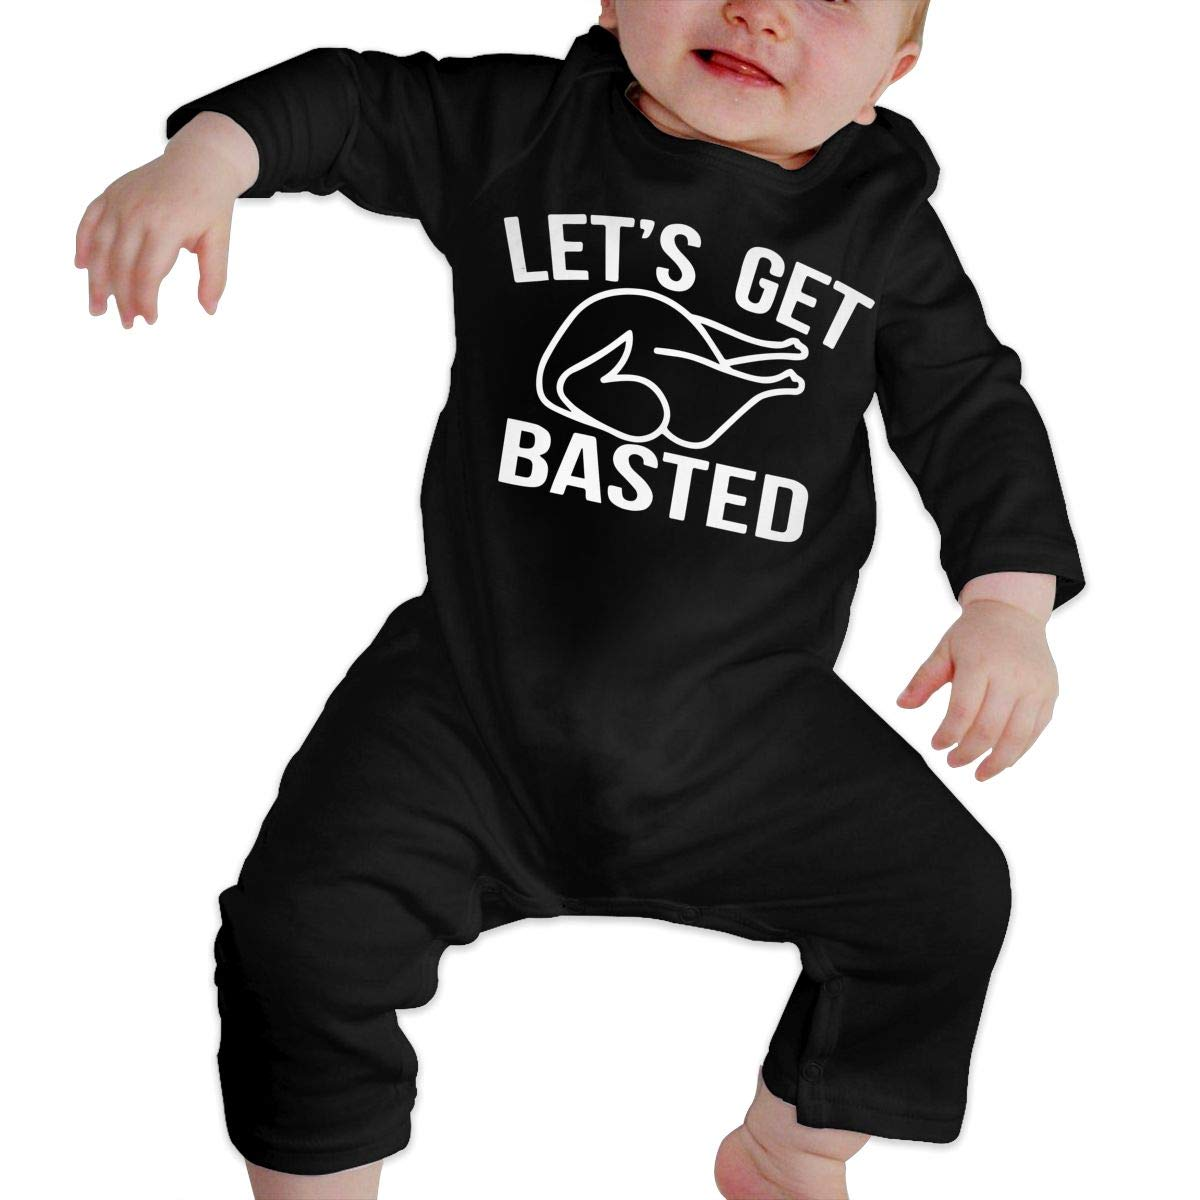 Q64 Toddler Round Collar Lets Get Basted Long Sleeve Bodysuits 100/% Cotton Suit 6-24 Months